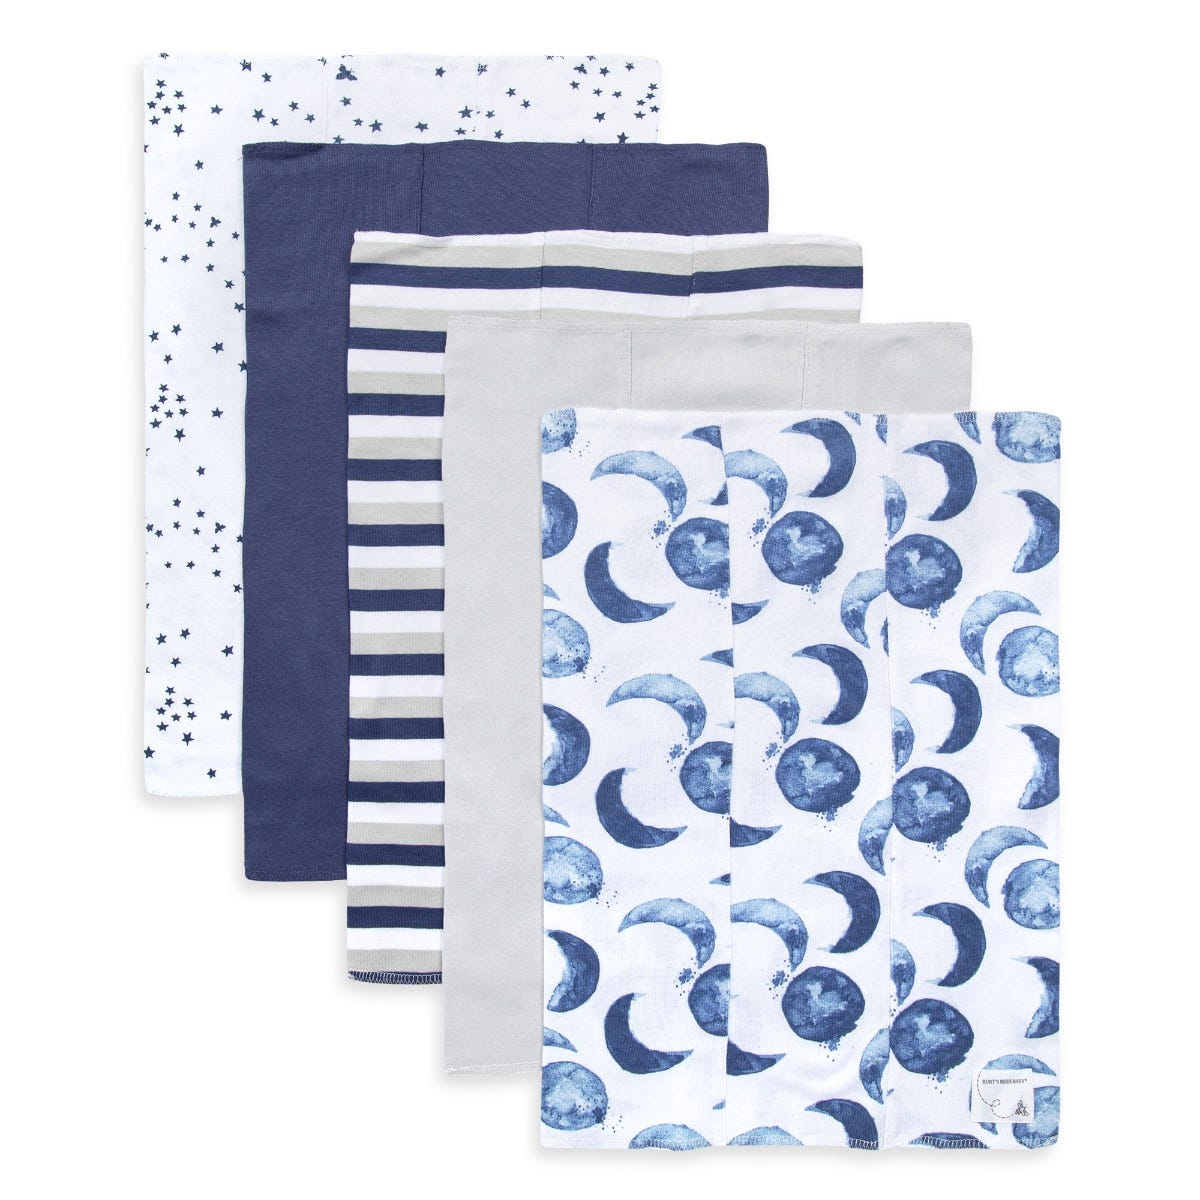 5 Pack Baby Burp Cloths Reusable Baby Towel of Extra Absorbent and Soft Six-ply Cotton Gauze Washcloths 12 x 12